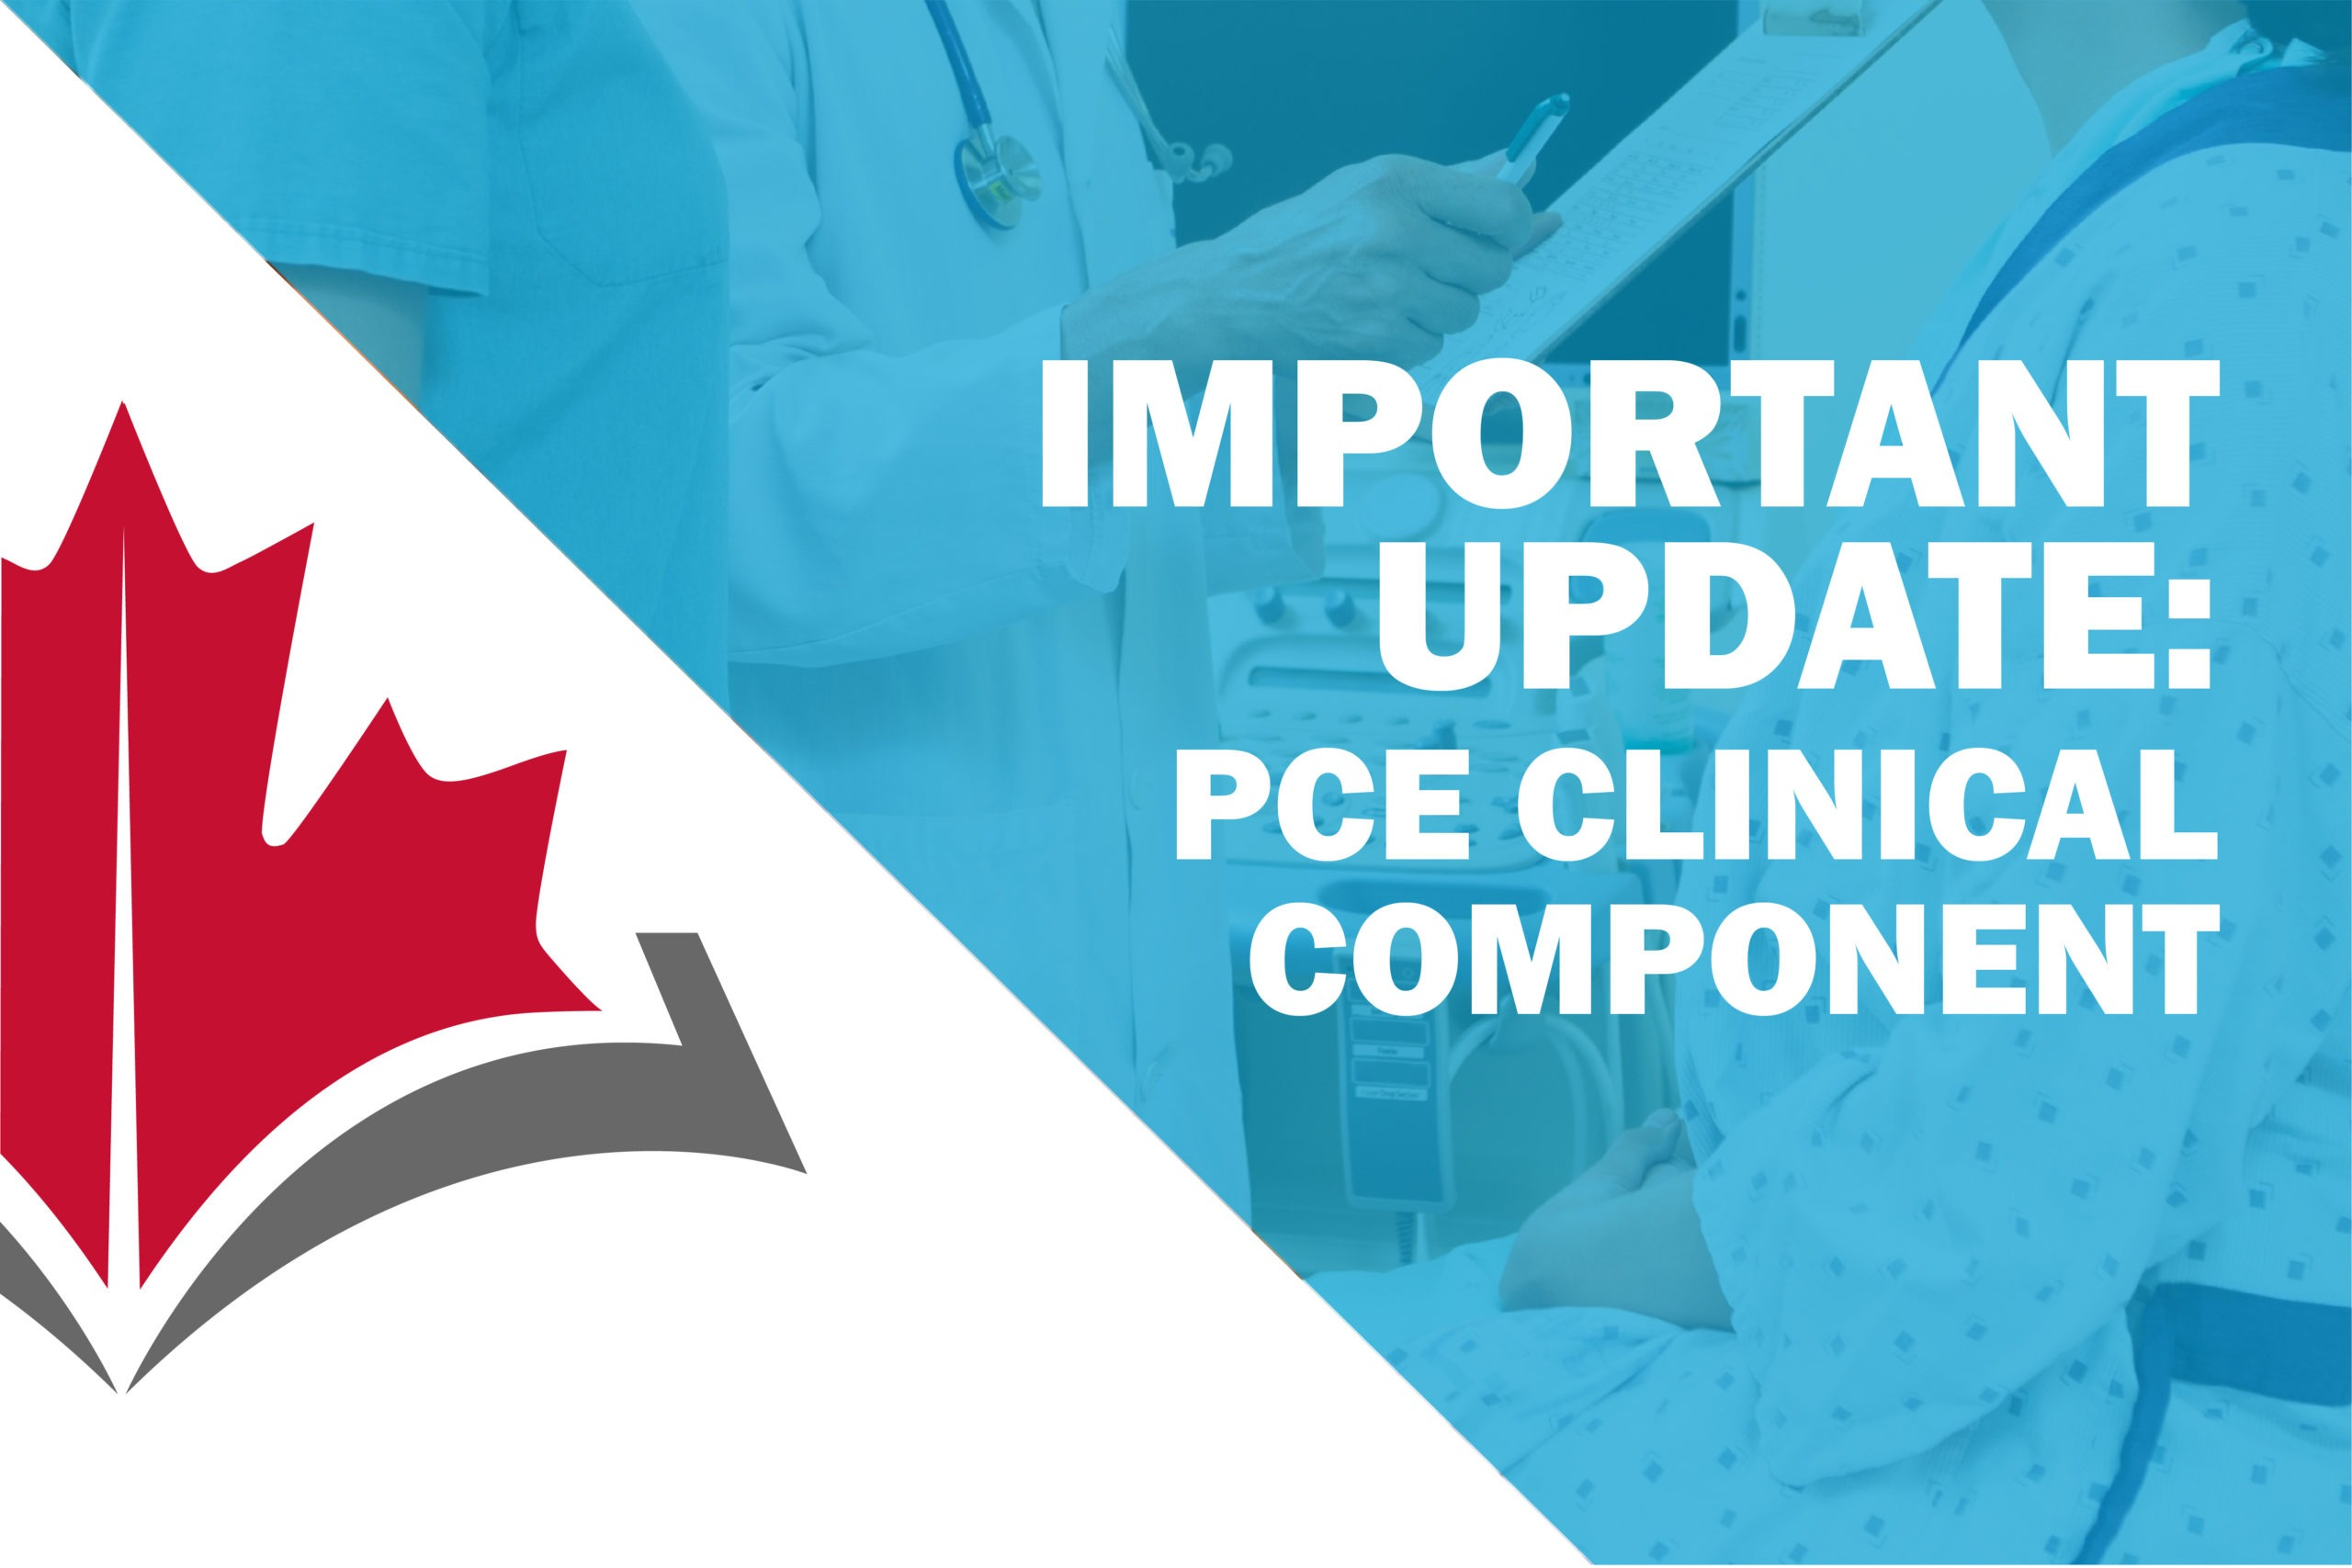 Important Update: PCE Clinical Component